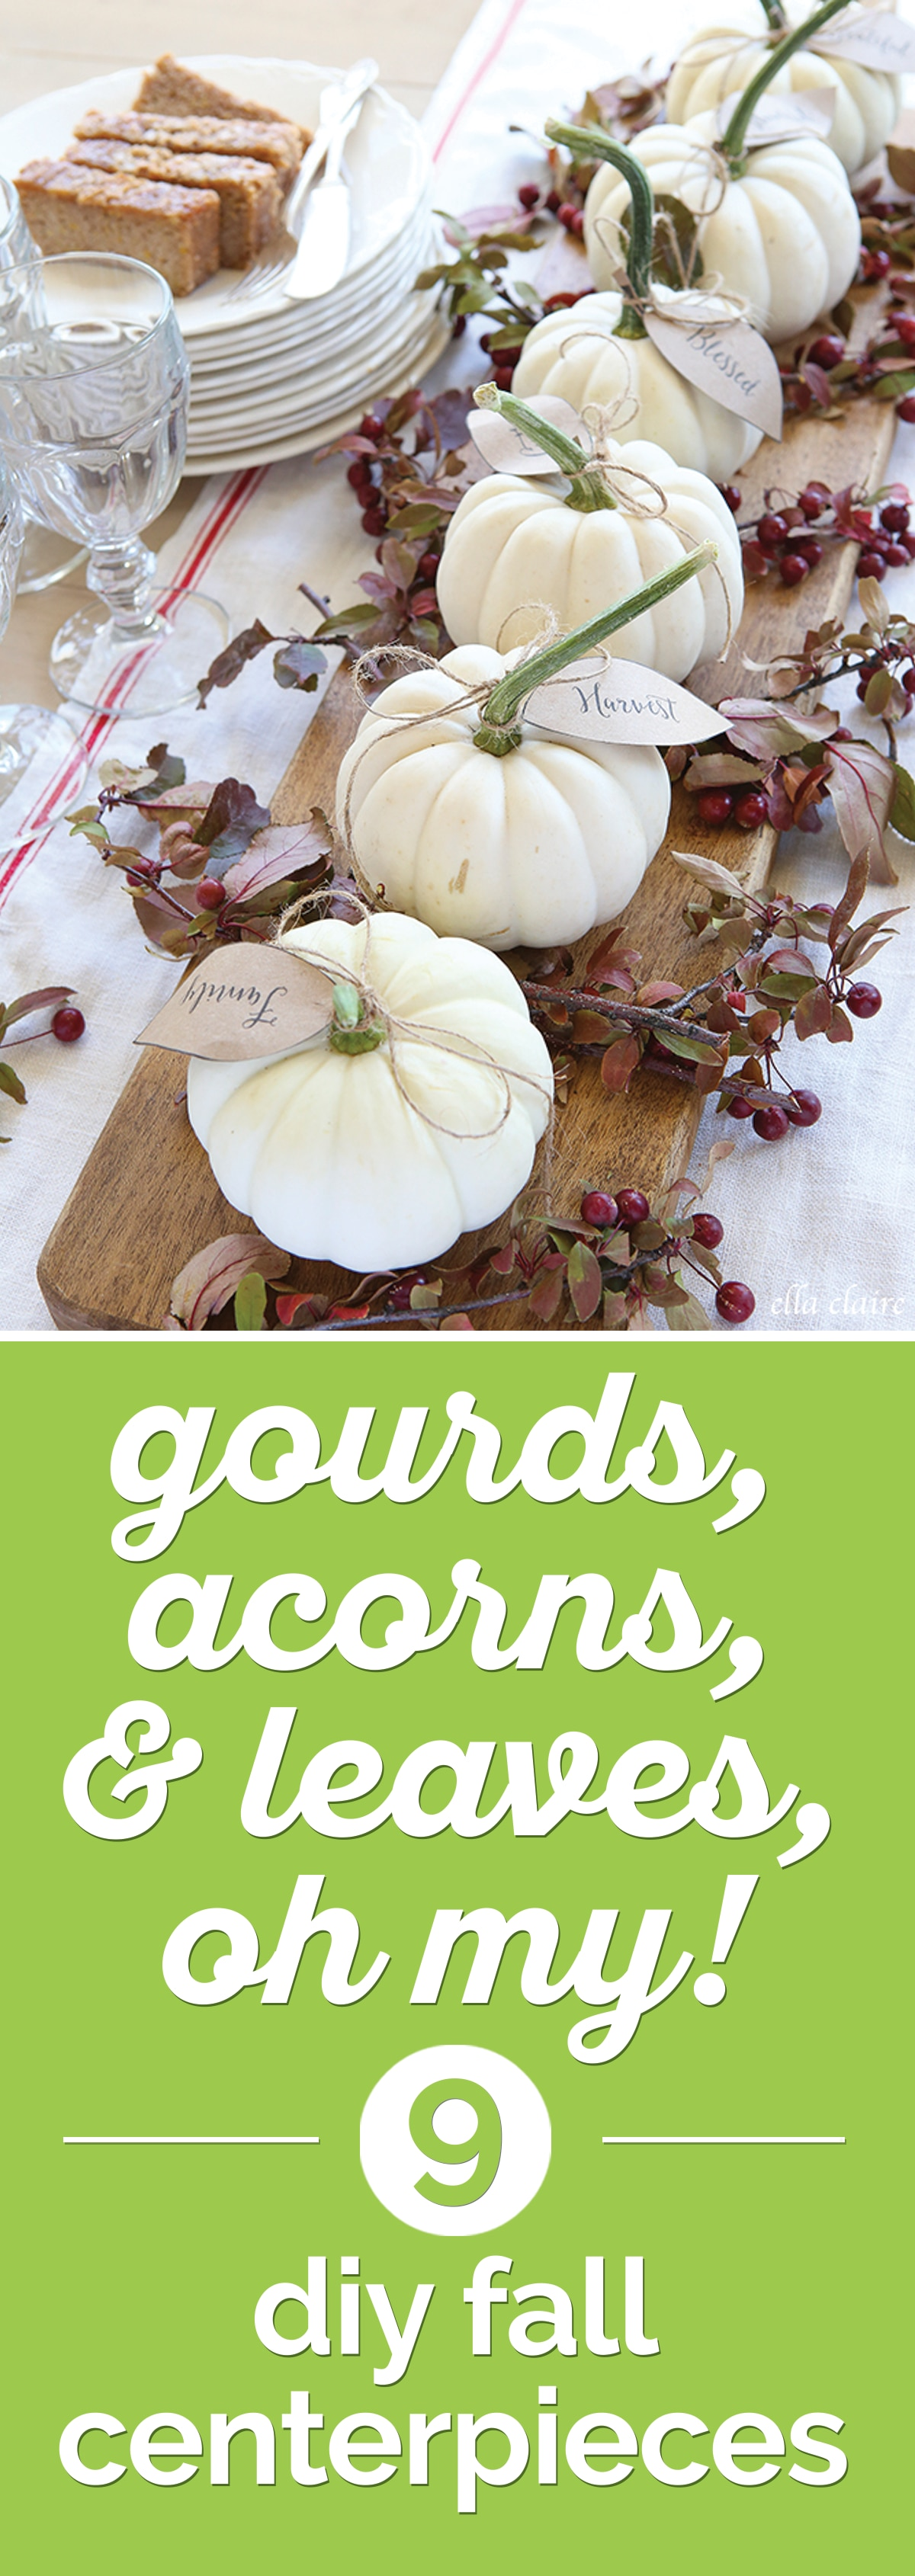 Gourds, Acorns & Leaves, Oh My! 9 DIY Fall Centerpieces | thegoodstuff